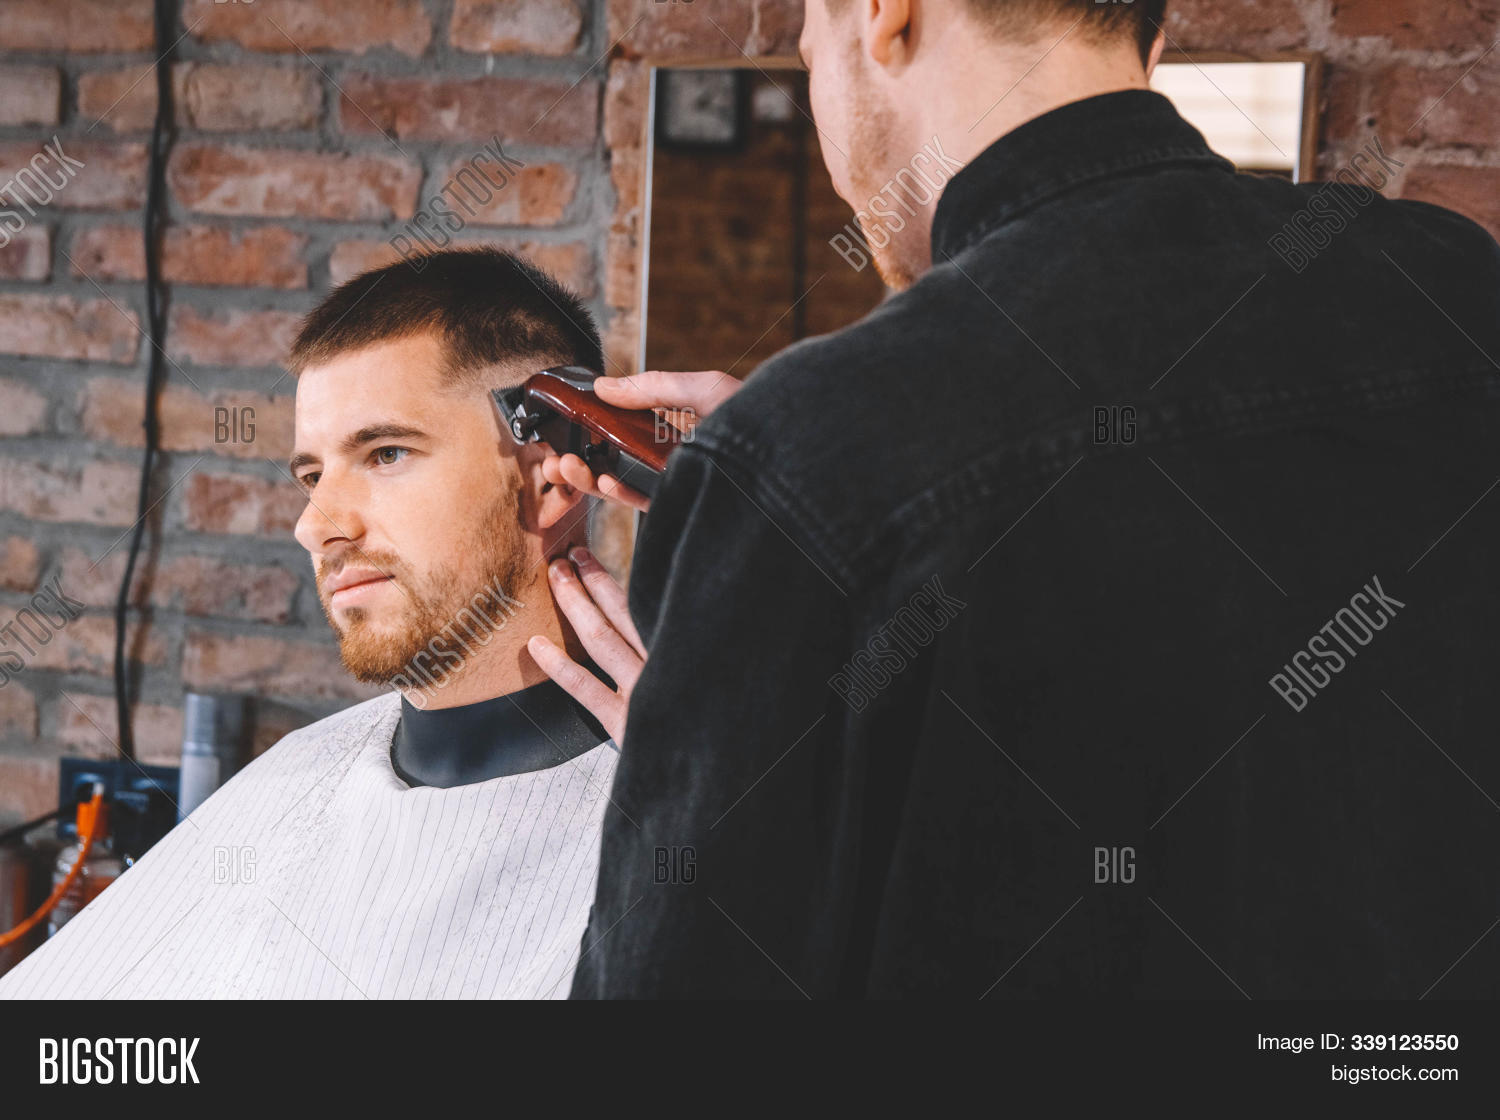 adult,barber,barbershop,beard,beauty,bristle,business,care,caucasian,client,comb,customer,cut,cutting,electric,elegance,grooming,hair,haircut,hairdresser,hairstyle,hairstylist,hand,handsome,head,hold,lifestyle,machine,male,man,masculinity,men,modern,occupation,person,professional,razor,real,salon,service,shop,side,skill,style,tool,trimmer,trimming,two,work,young